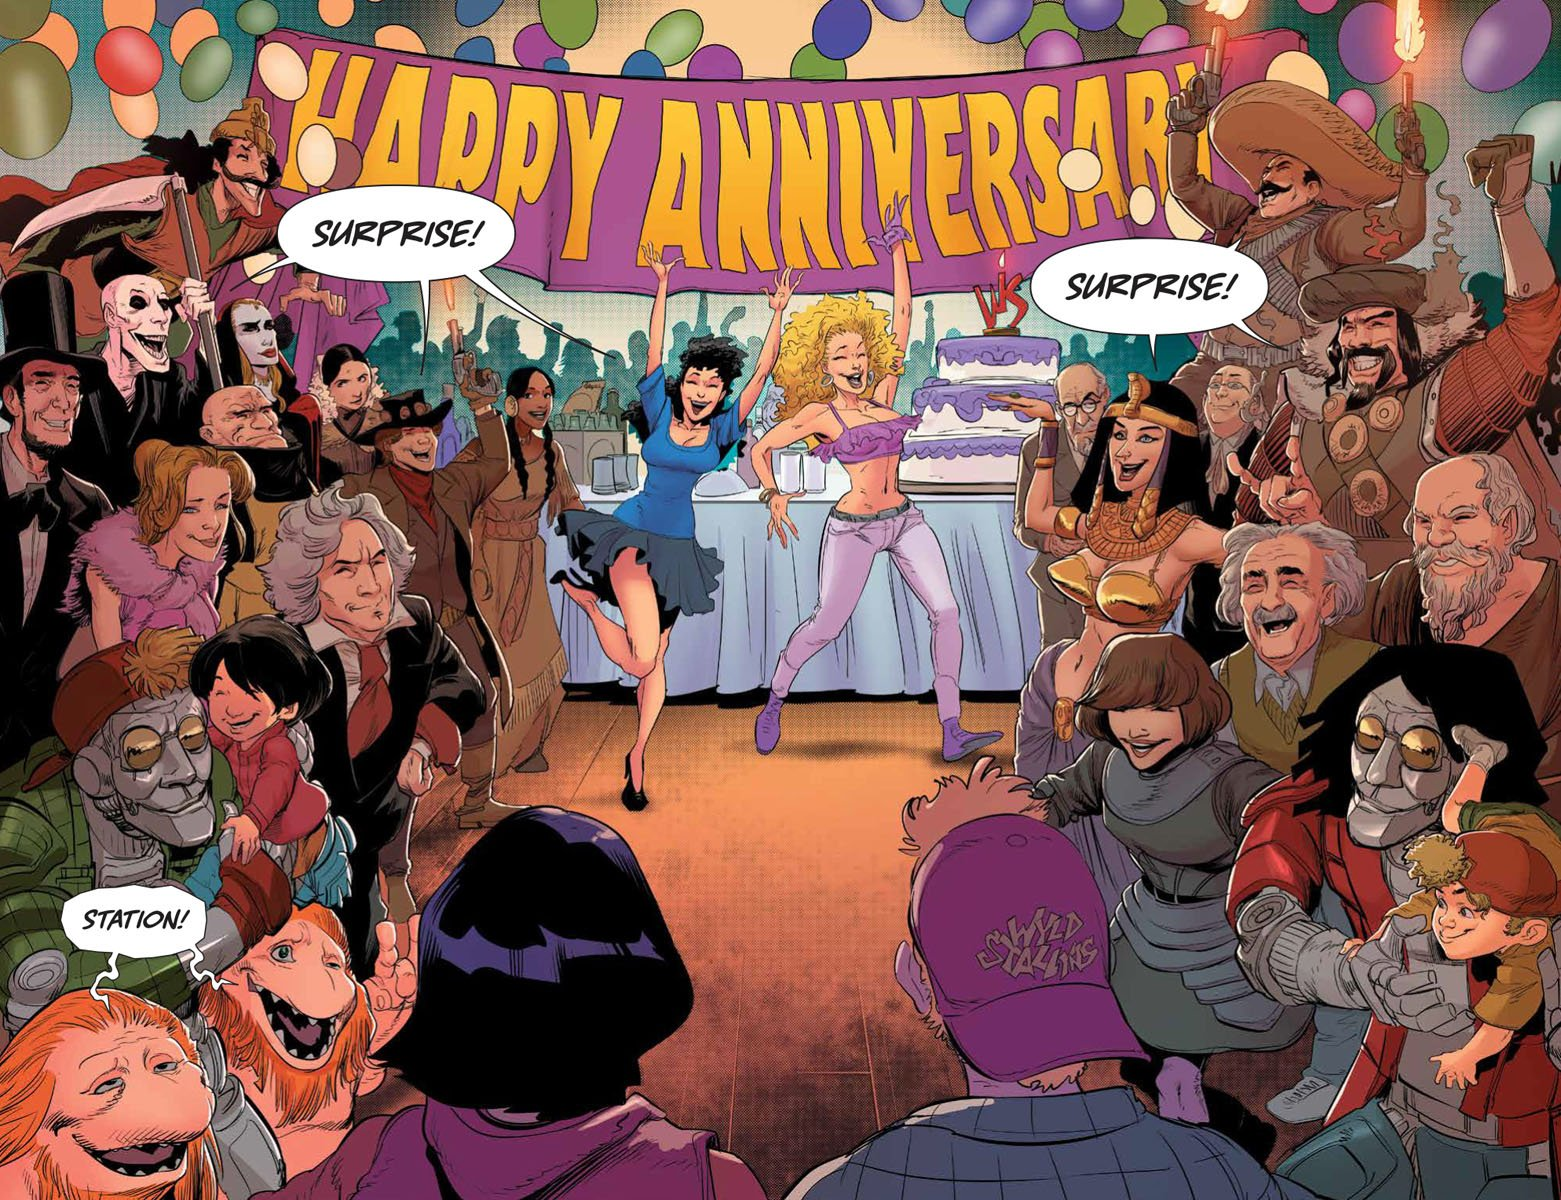 Bill & Ted Save the Universe 1 pages 6 and 7